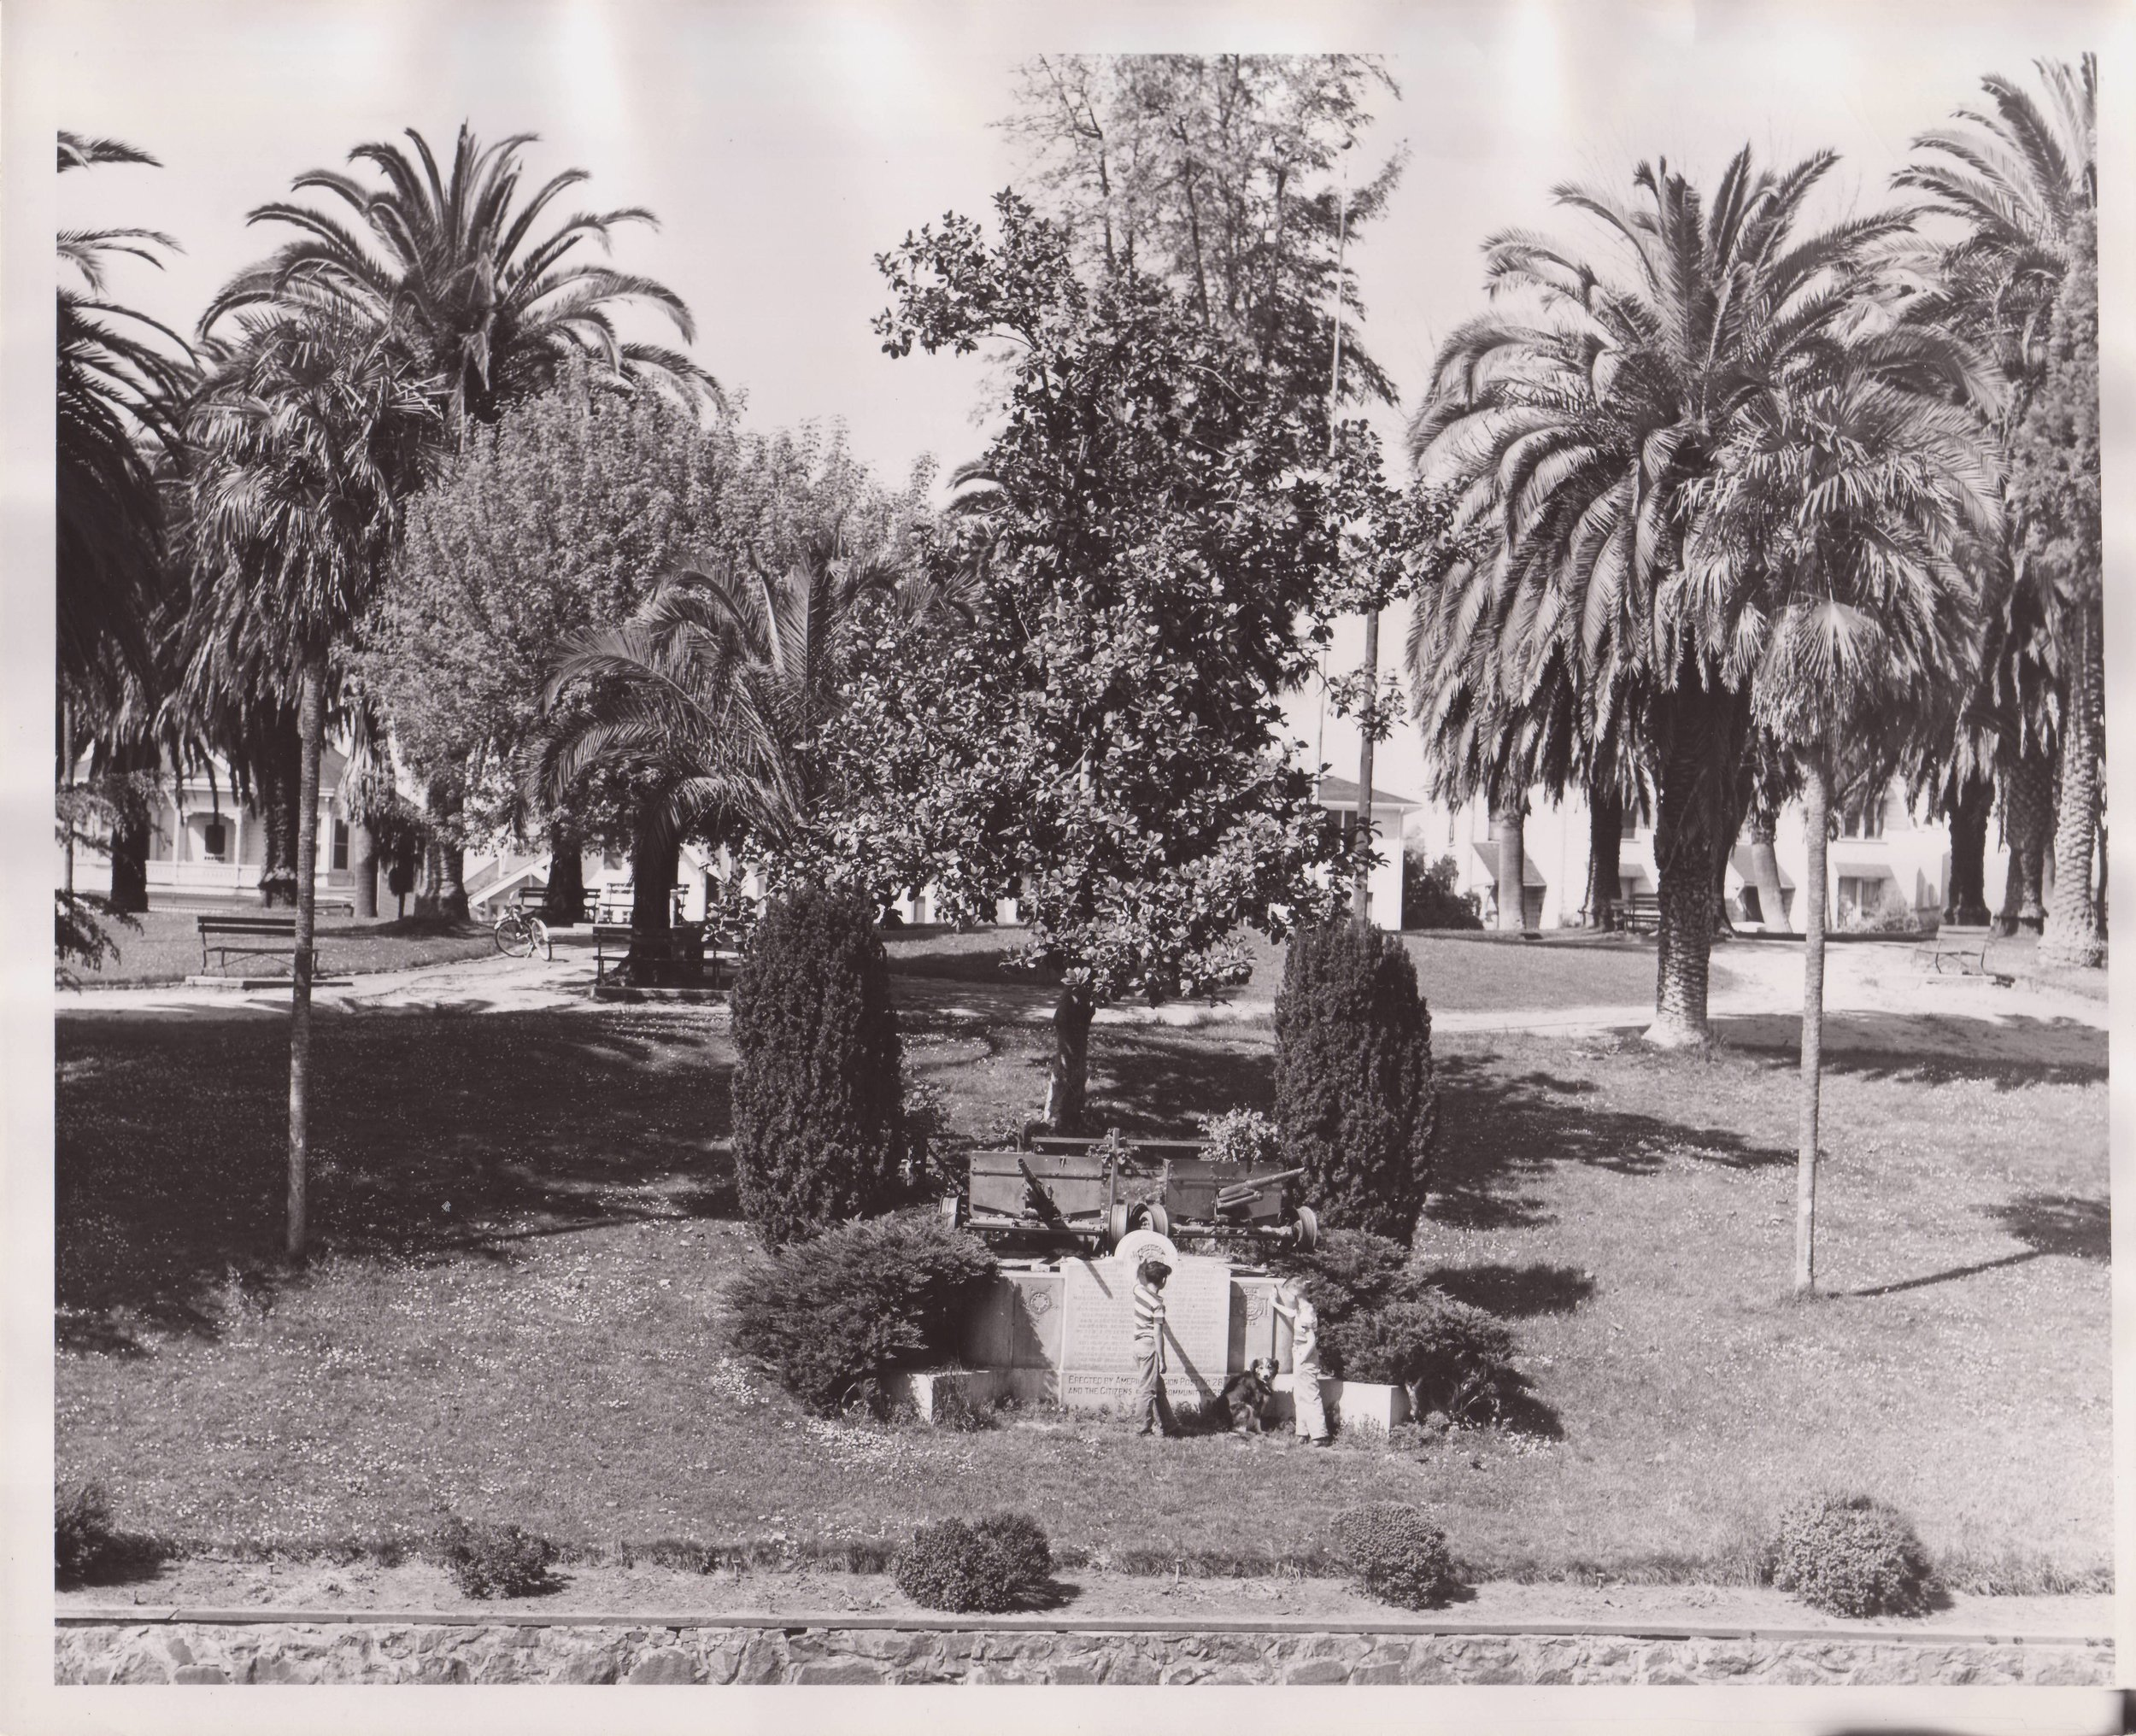 During WWII the first memorial cannon was sent away to be repurposed as part of the war effort. The later, WWII Memorial incorporated parts of the WWI Memorial. Photo courtesy of the Sonoma County Library.